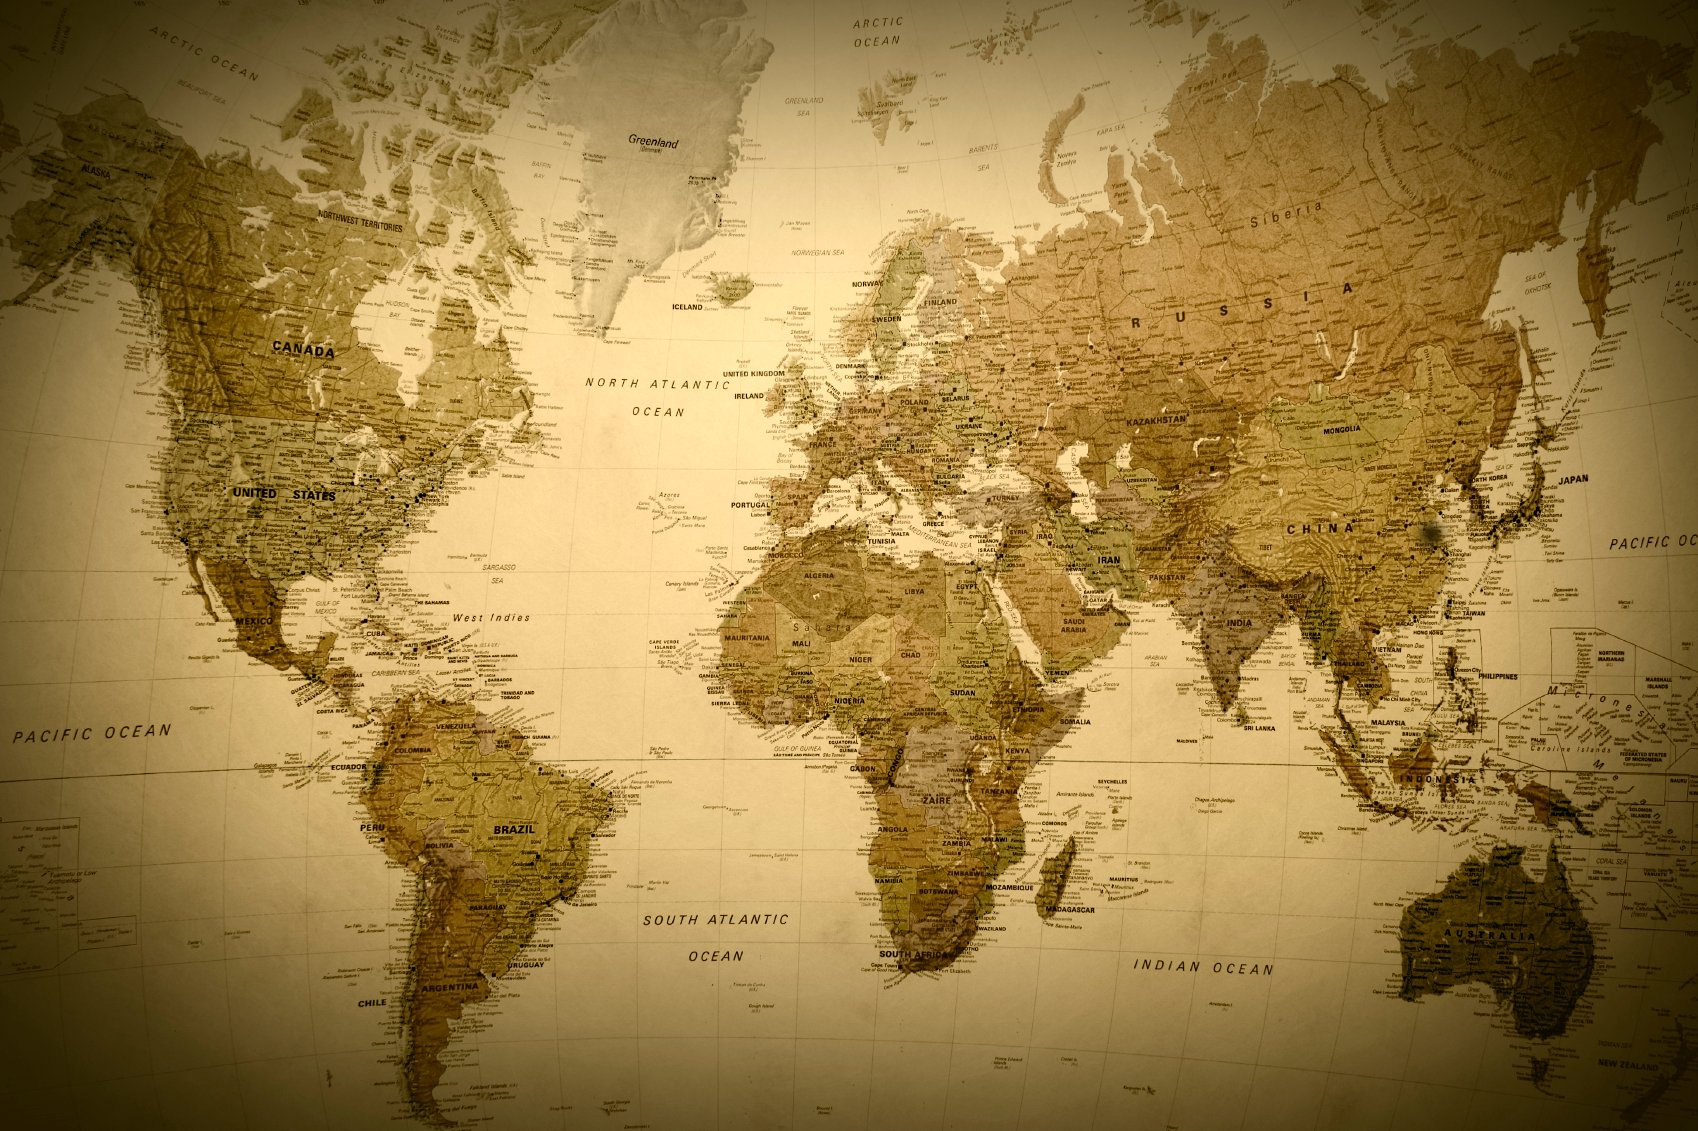 Antique style world map wallpaper hd wallpapers blog photo collection vintage world map wallpapers source antique world map wallpaper wallpapersafari gumiabroncs Gallery